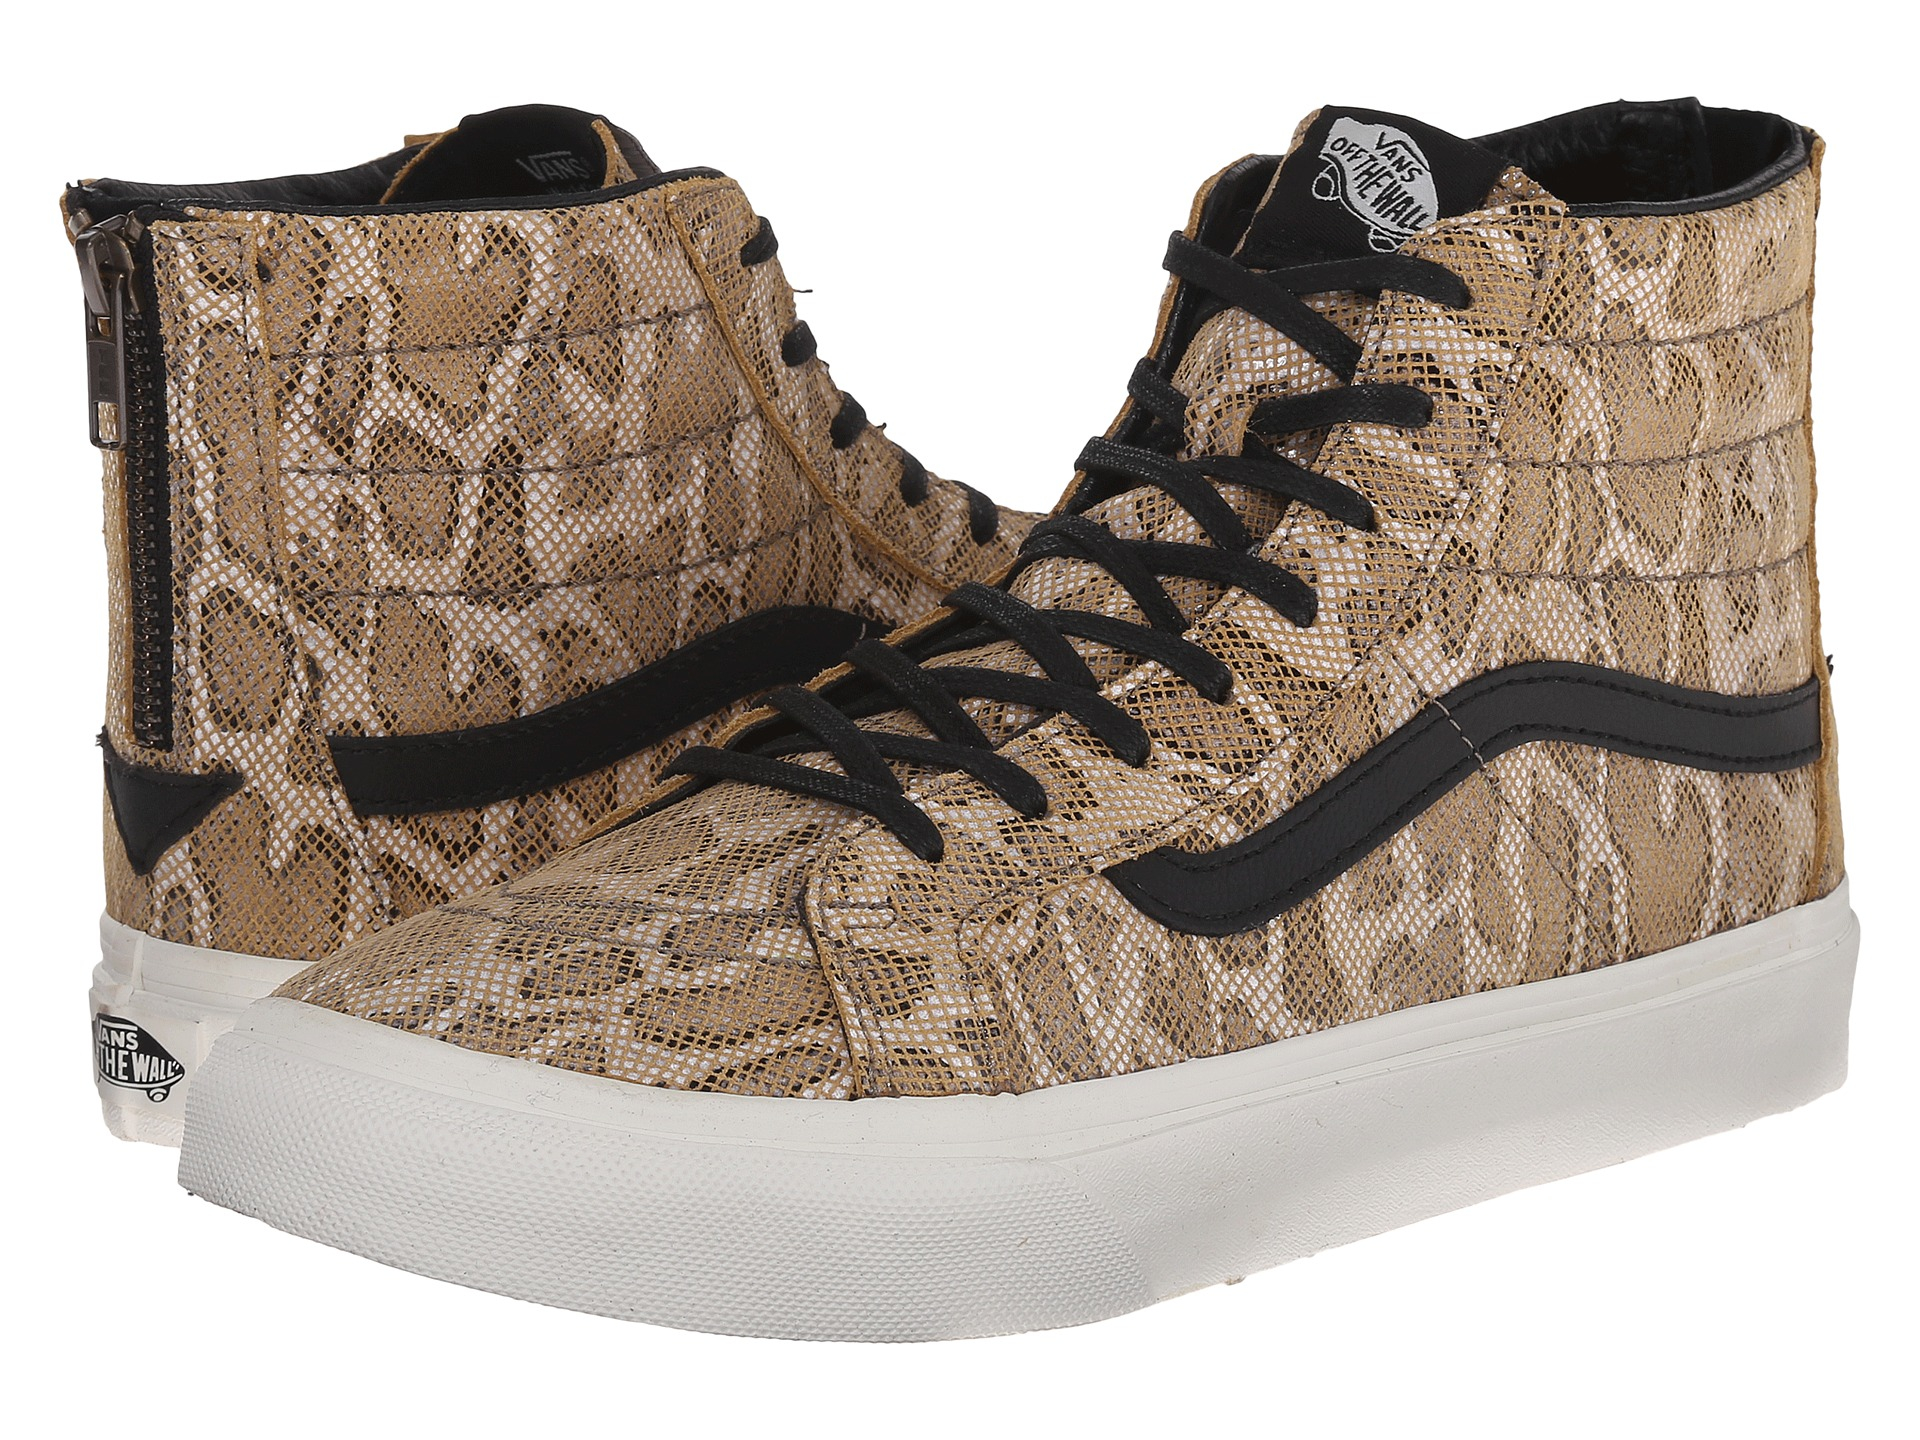 Unisex Shoes Vans SK8-Hi Slim Zip (Snake) Tan